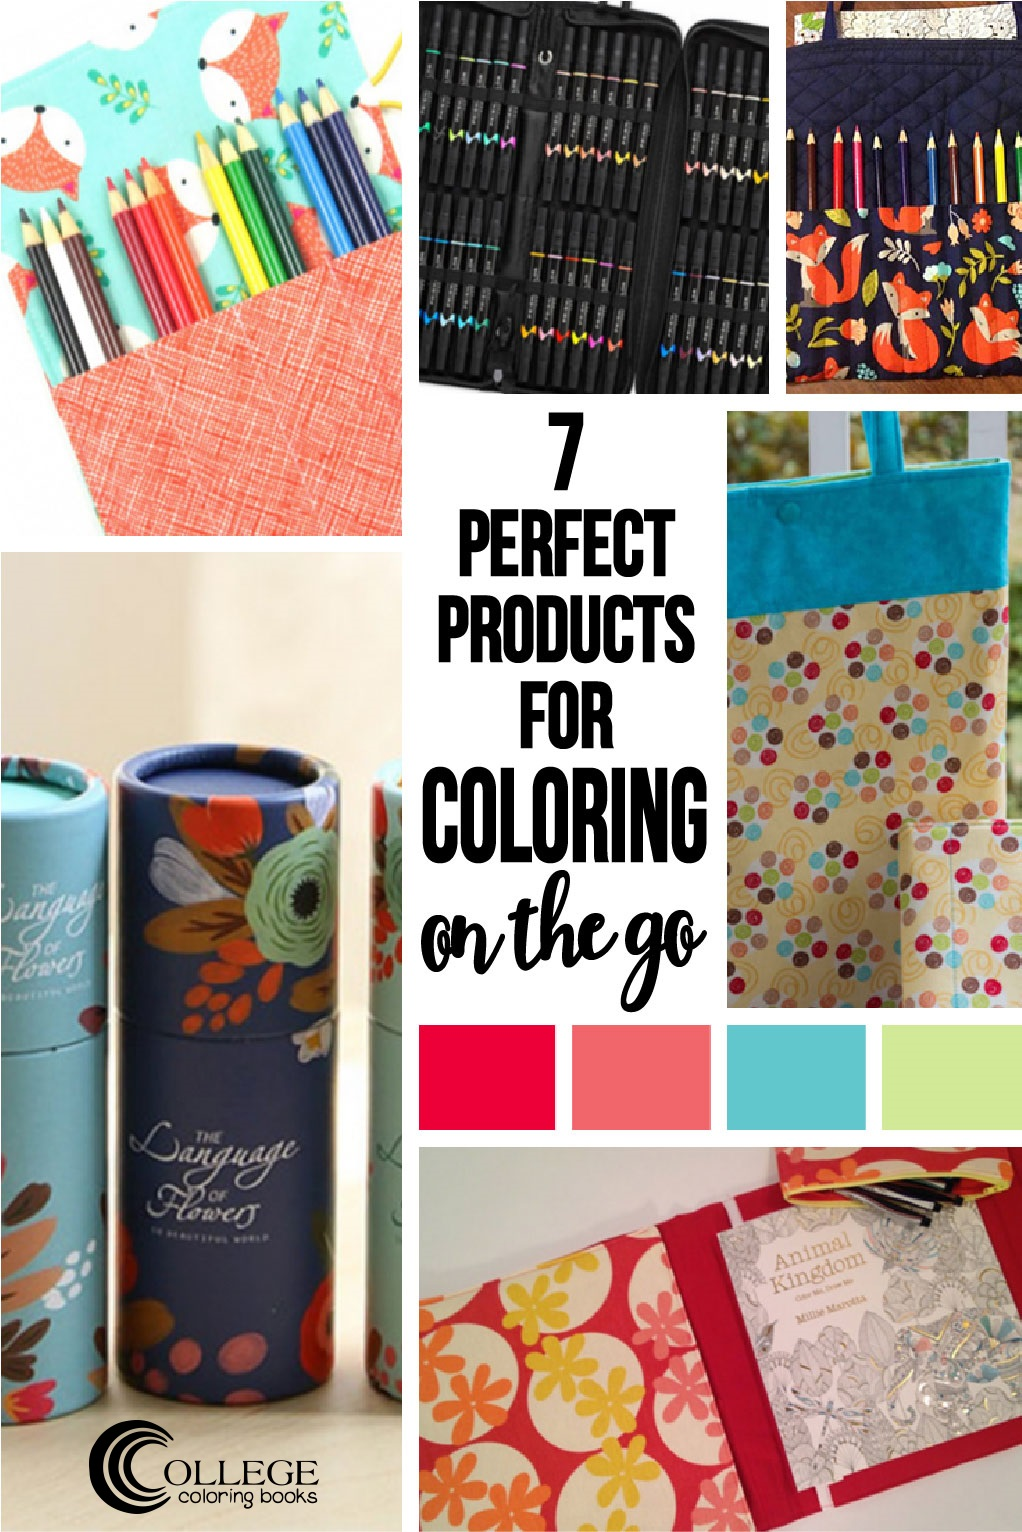 7 perfect products for coloring on the go